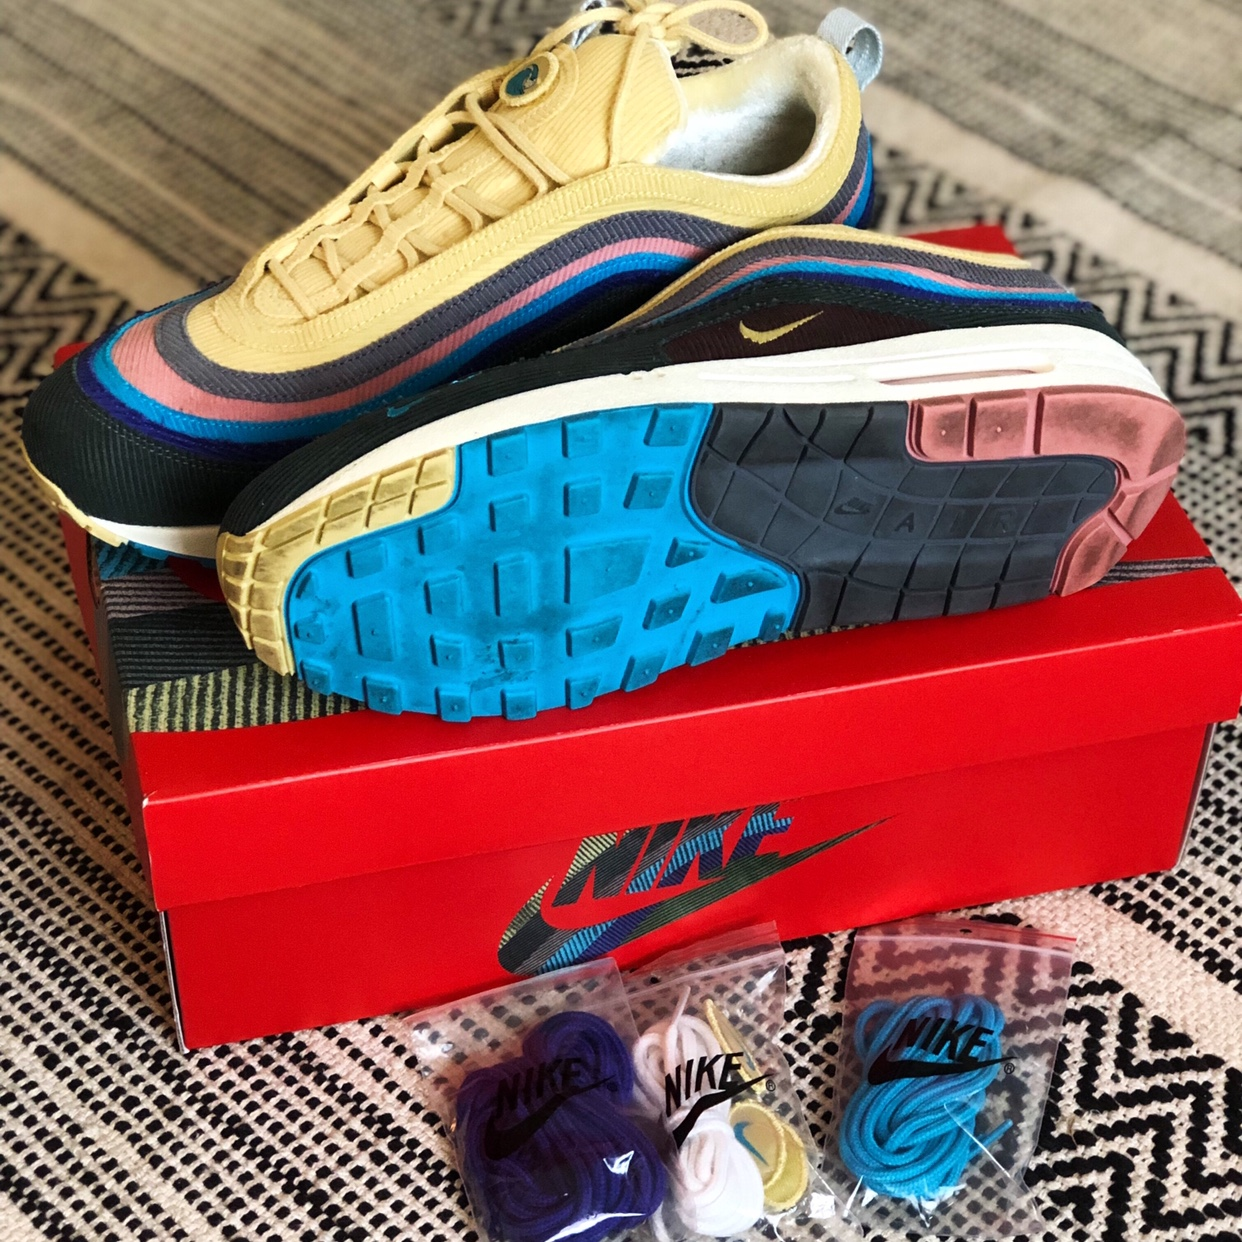 Nike Air Max 197 'Sean Wotherspoon' Lightly worn Depop